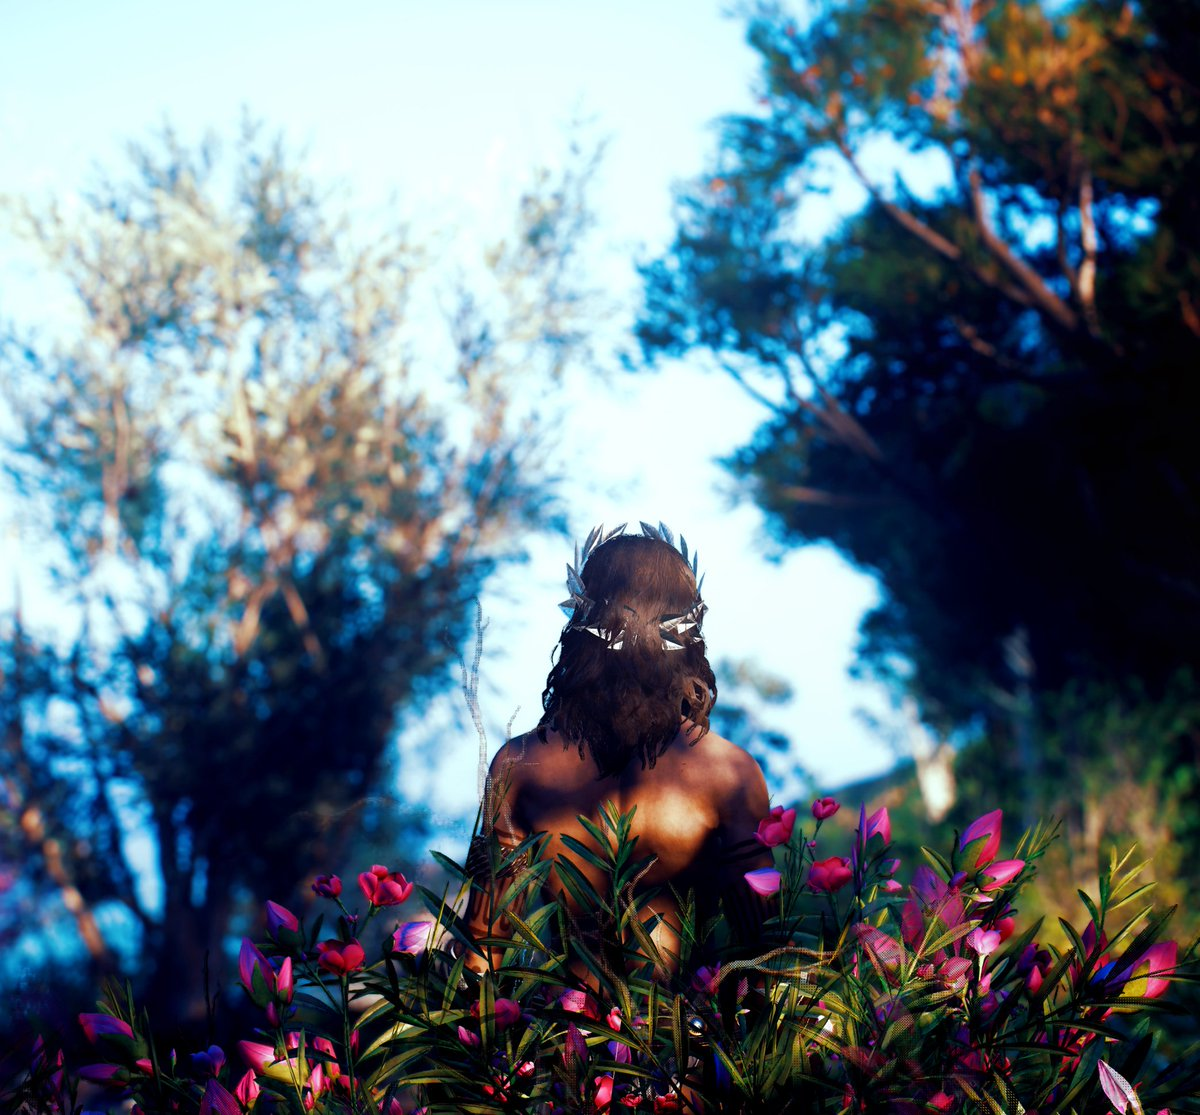 One with nature #screenshot #odyssey #AssassinsCreed #acodyssey #kassandra #AssassinsCreedOdyssey #Ubisoft #VirtualPhotography #VGPUnite #TheCapturedCollective #videogames pic.twitter.com/YASU6sfOyJ